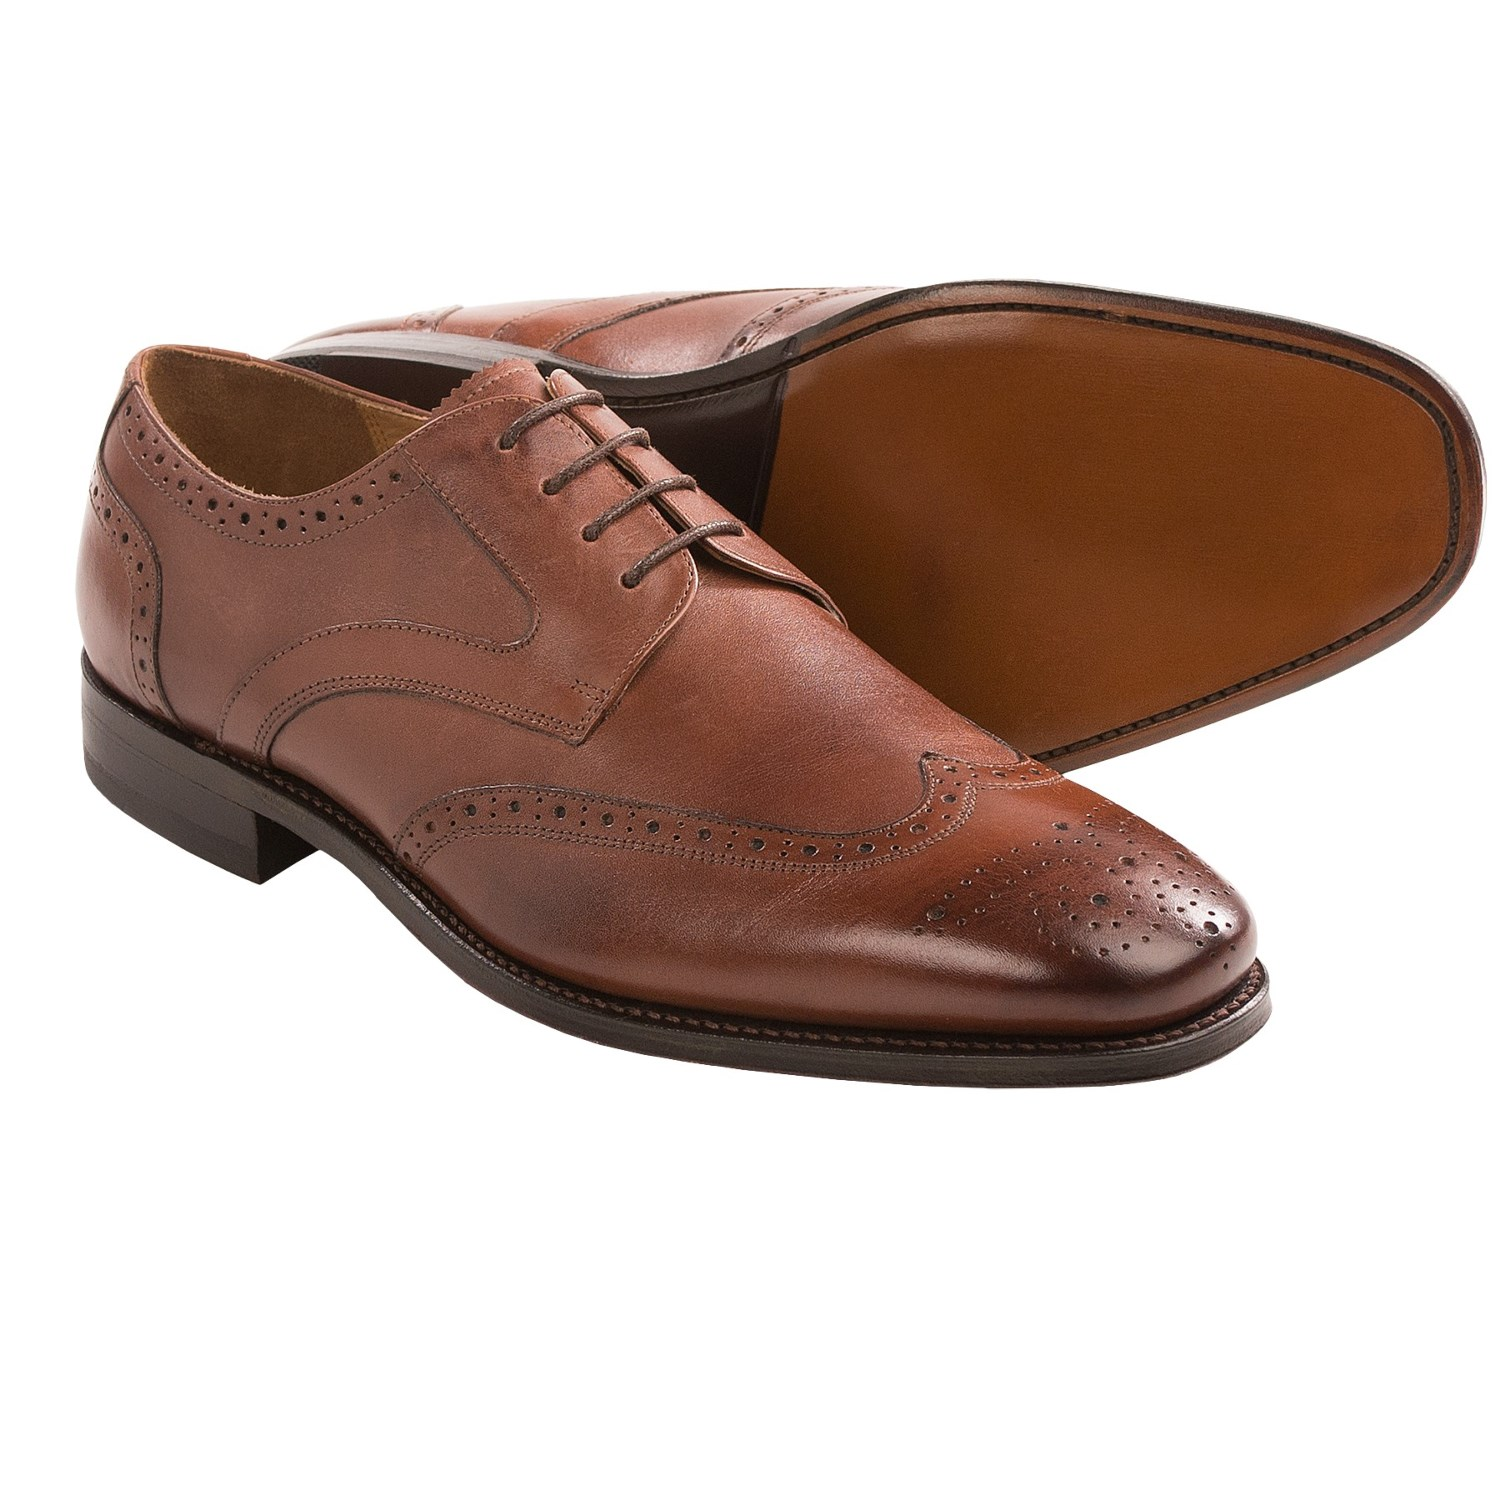 Florsheim Brogue Shoes Florsheim Cromwell Brogue